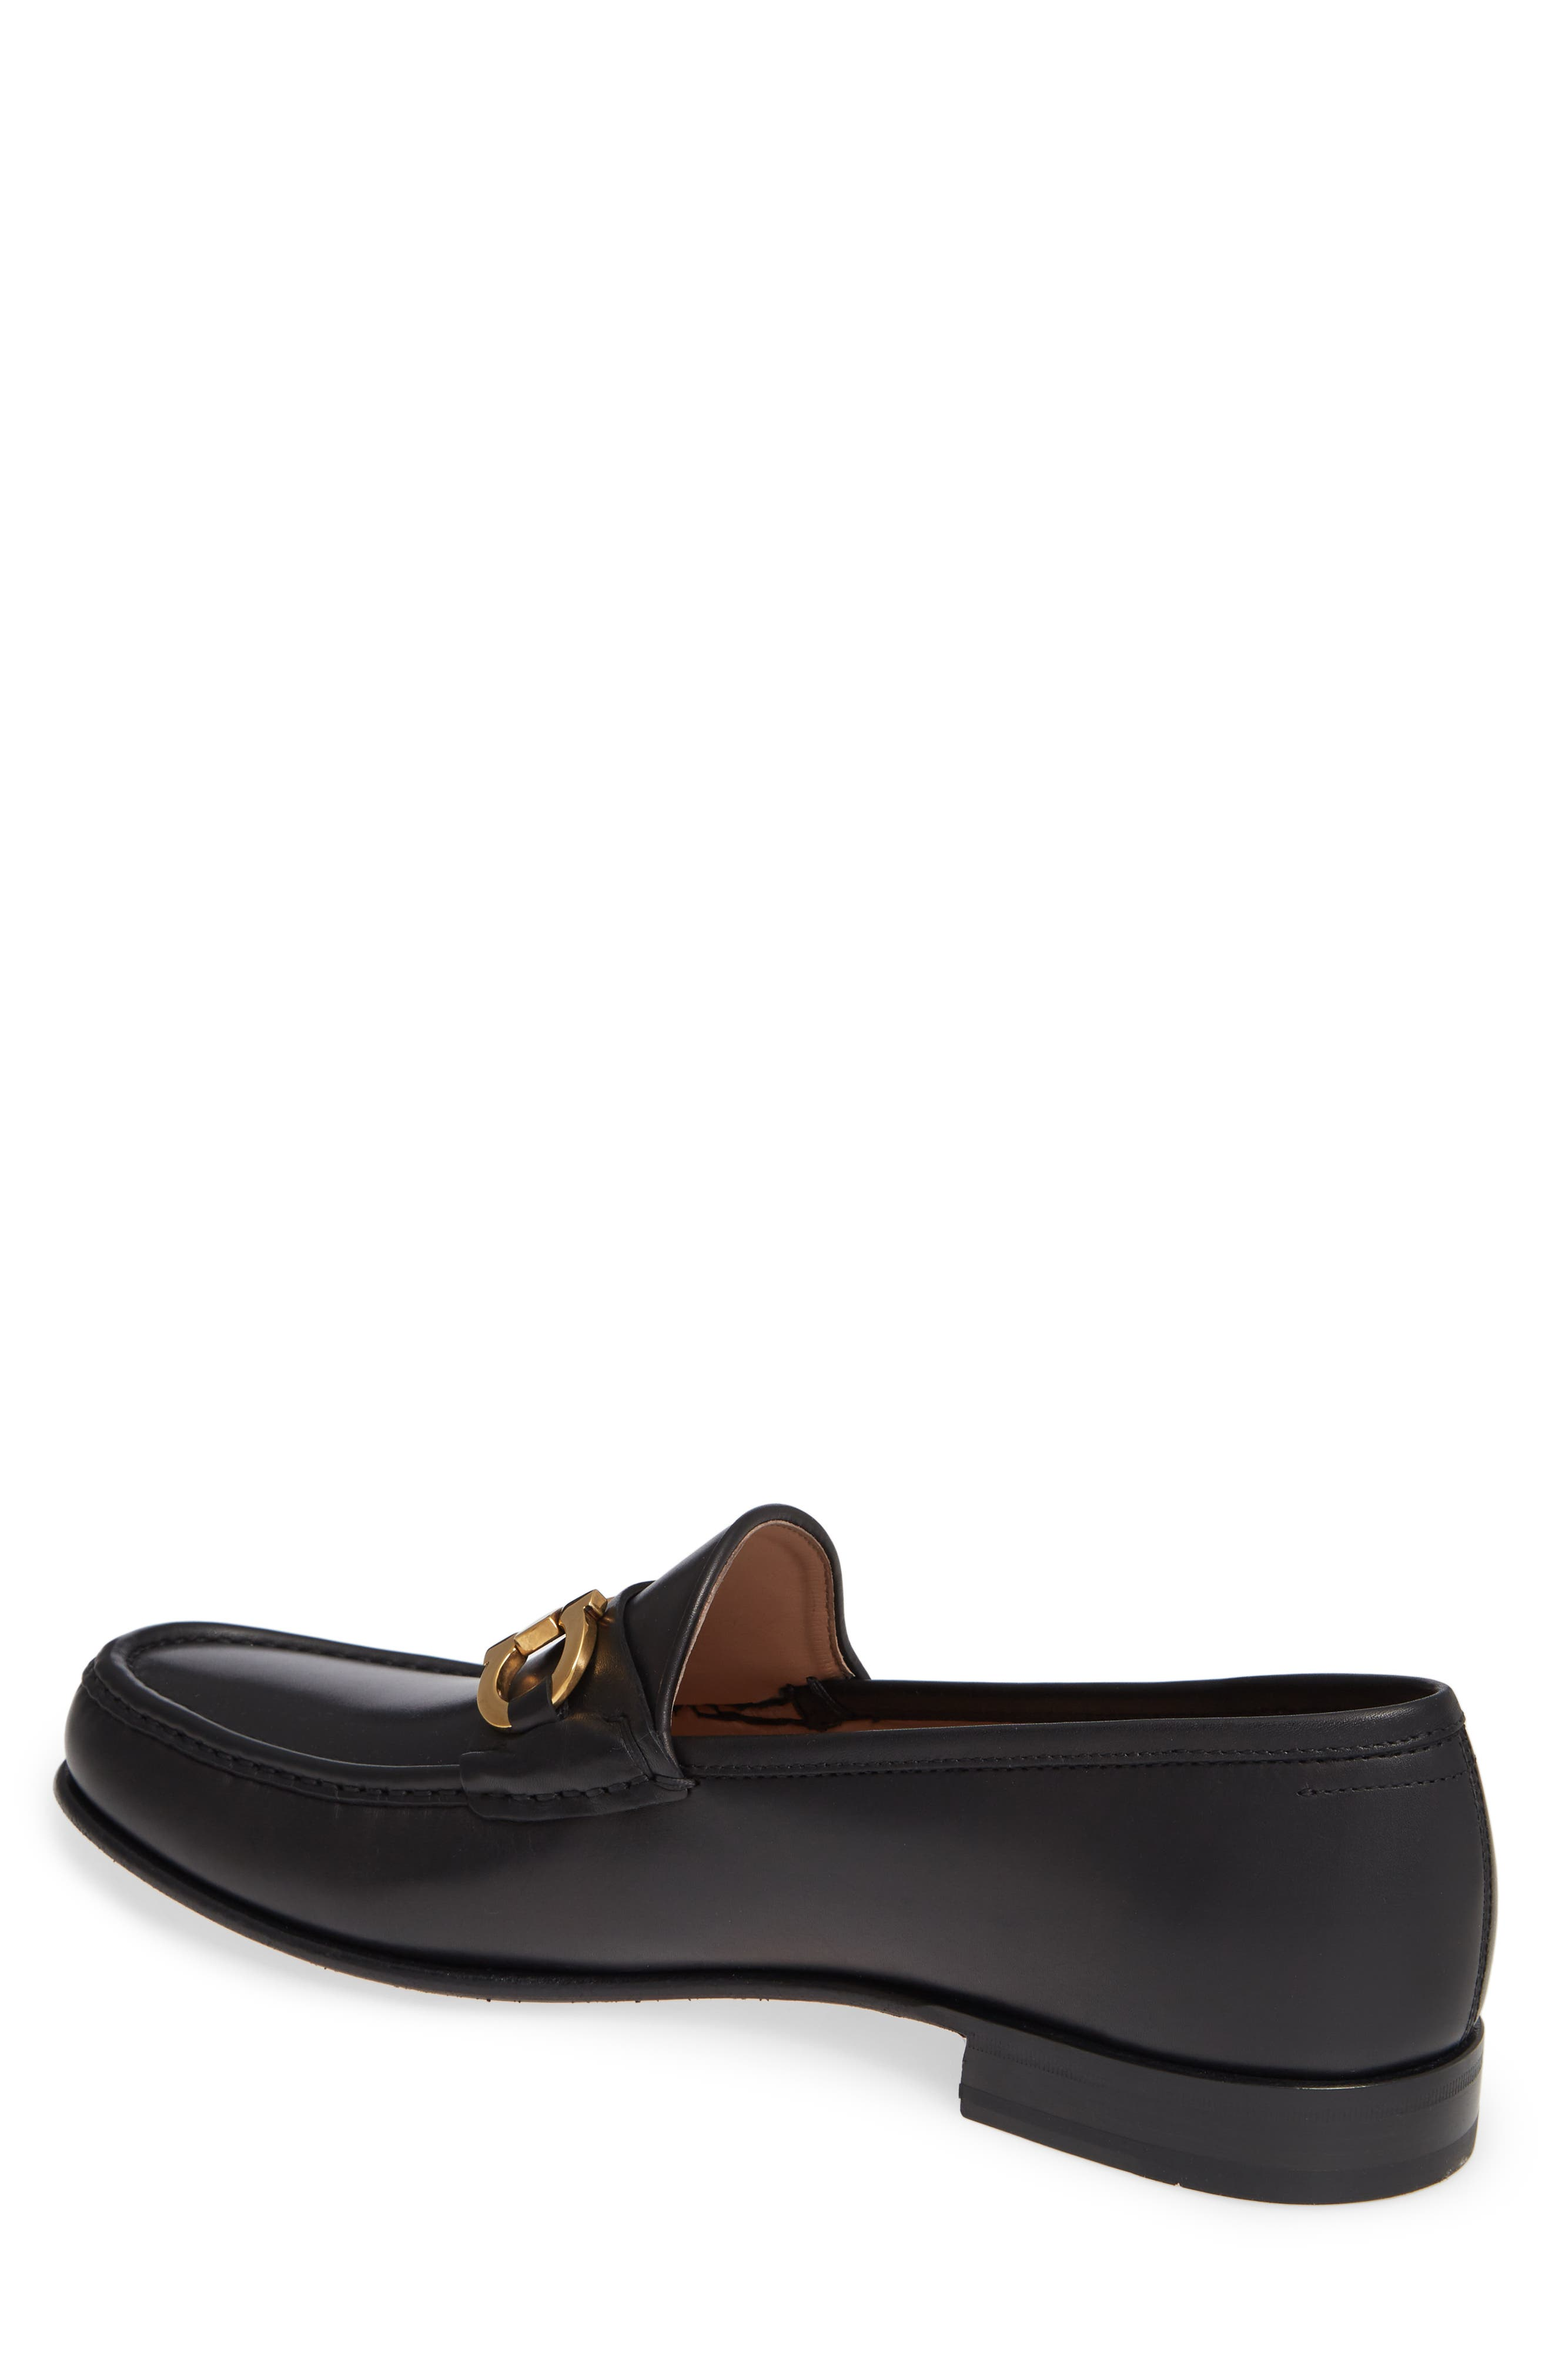 Bond Bitted Moc Loafer,                             Alternate thumbnail 2, color,                             NERO LEATHER